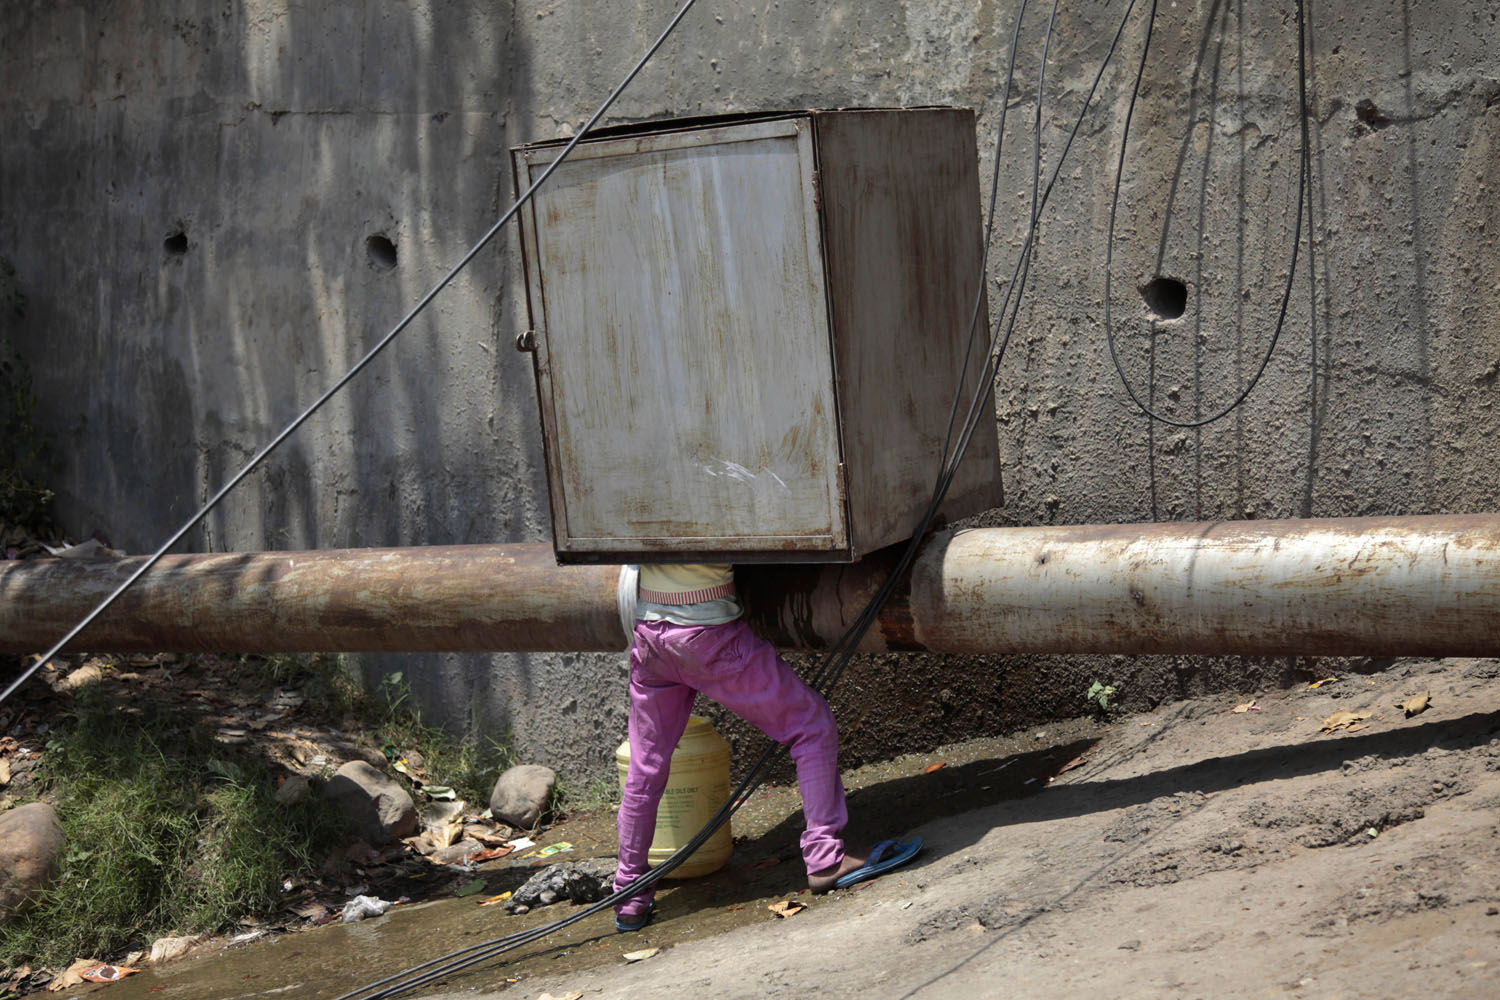 Jun. 9, 2014. A young boy collects drinking water from a leaking pipeline in the outskirts of Jammu, India.